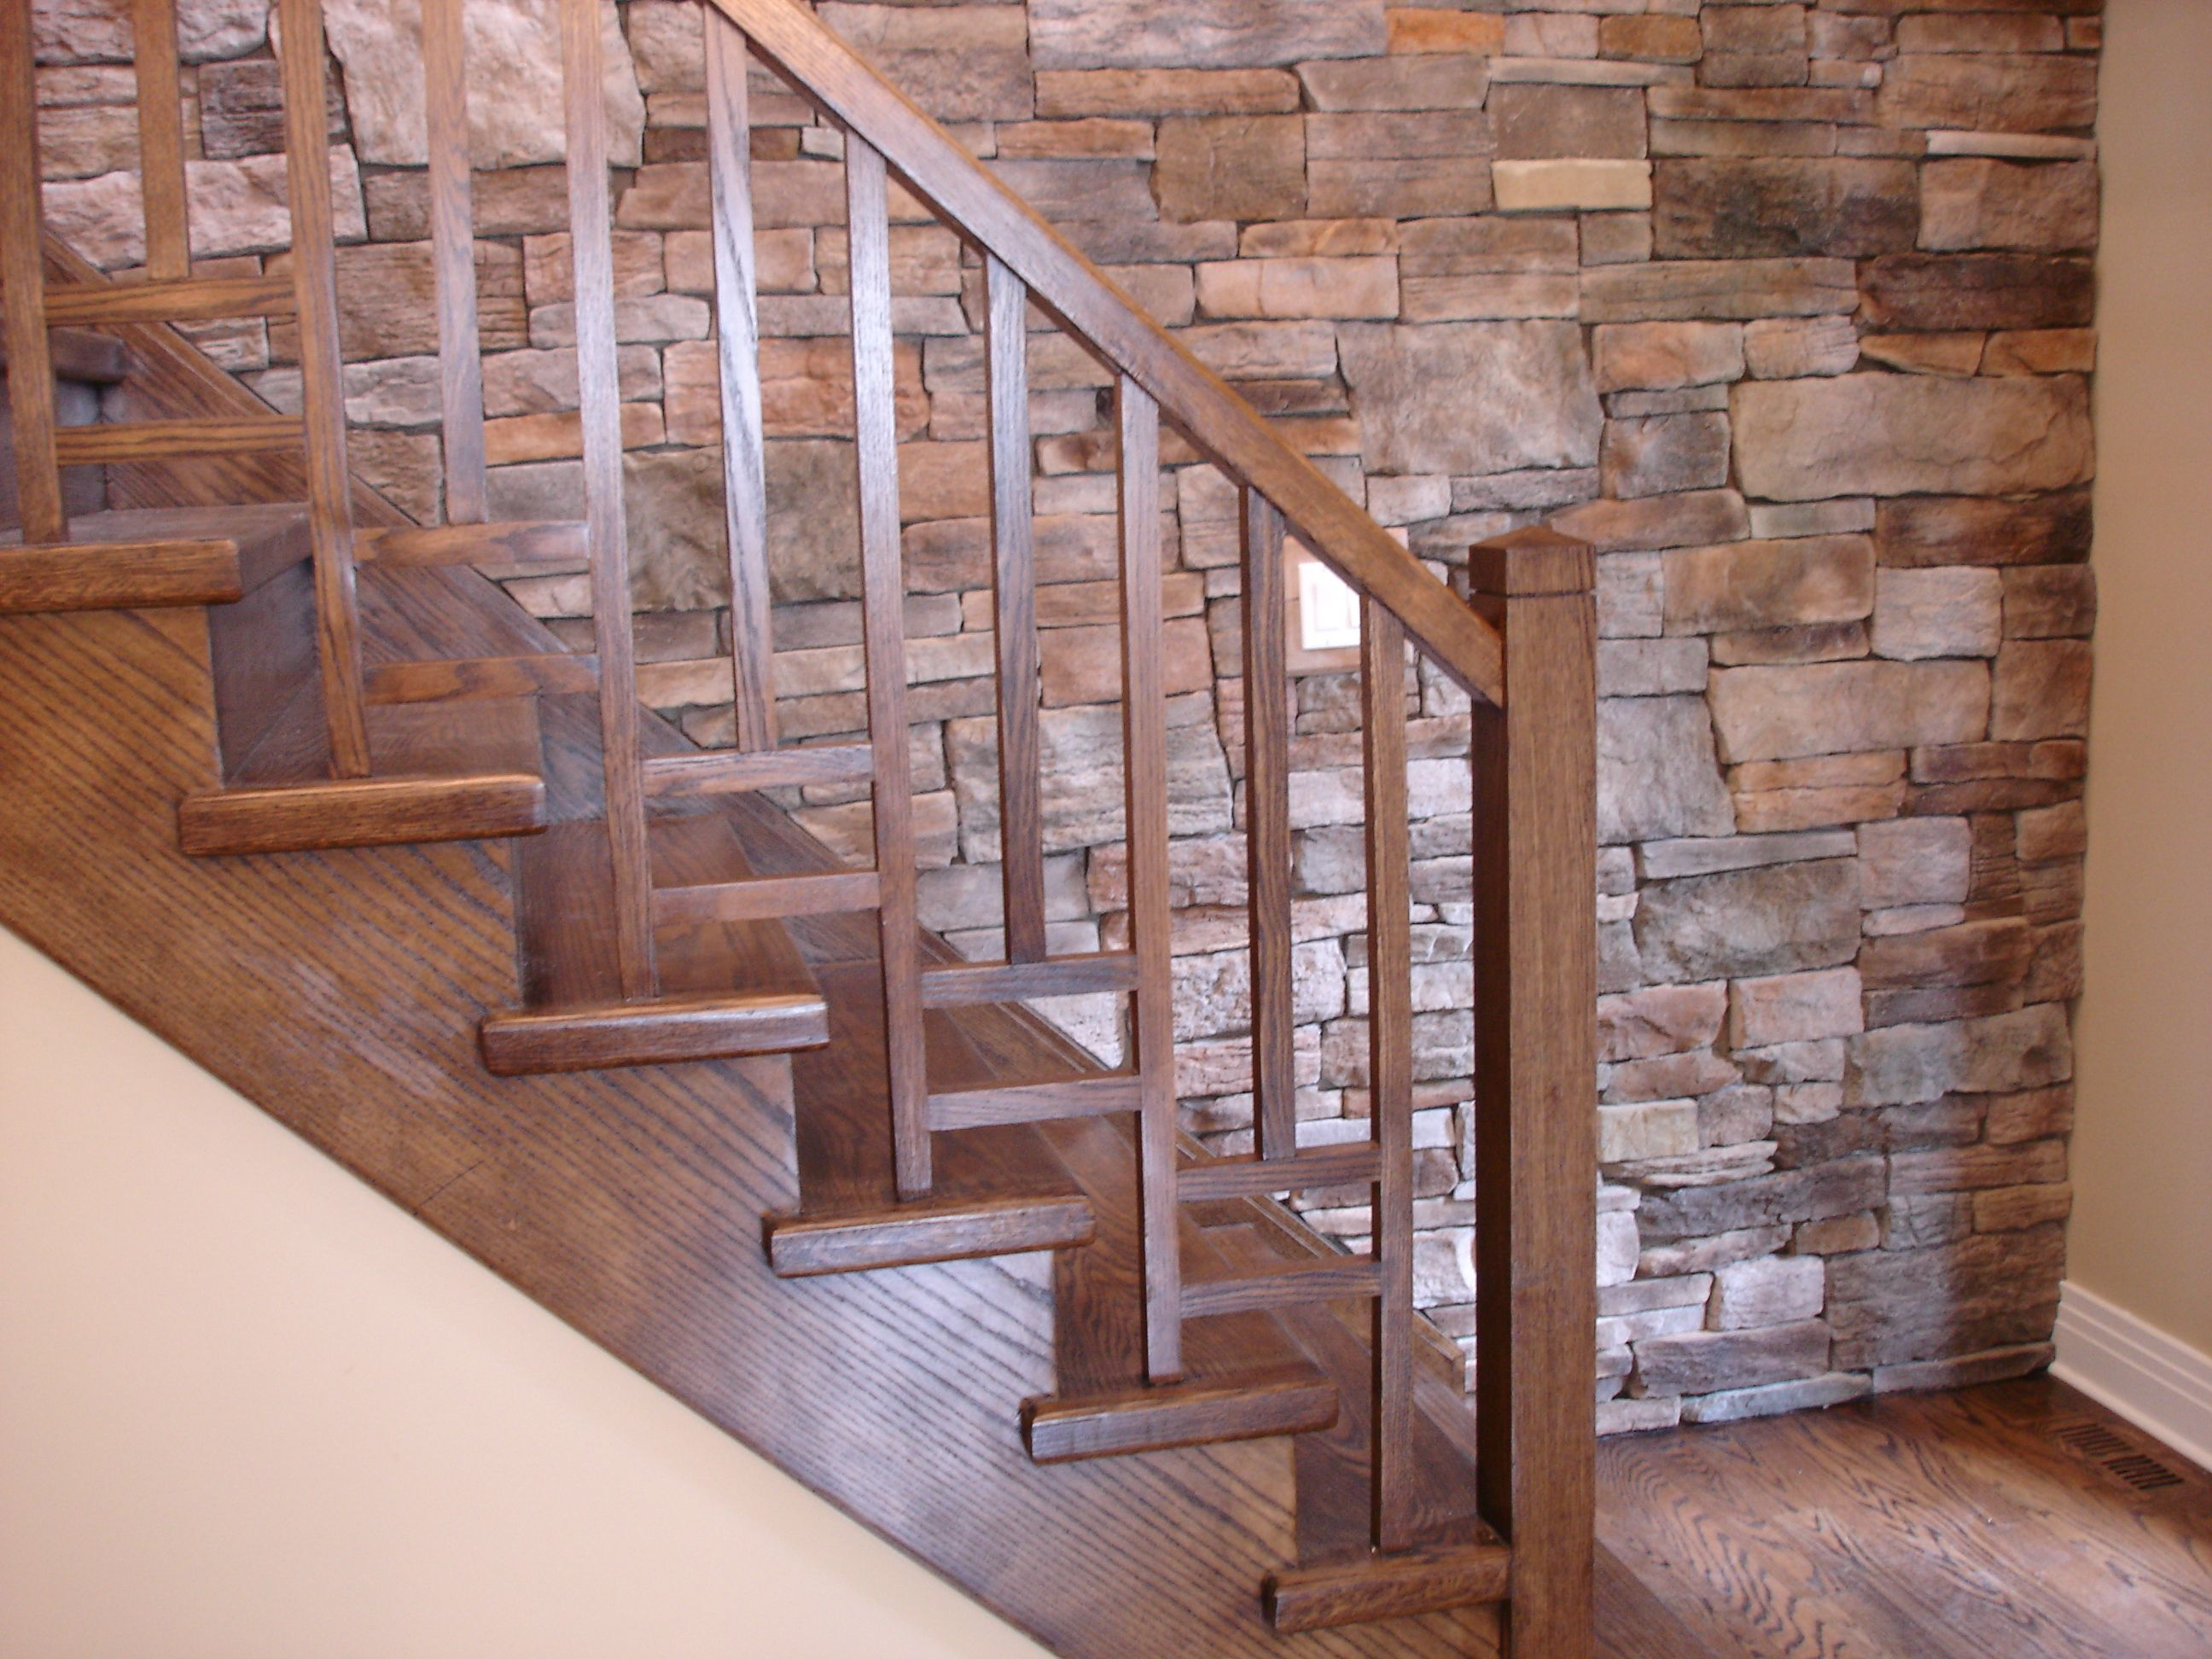 Modern Interior Stair Railings Mestel Brothers Stairs Rails Inc 516 496 4127 Wood Builders